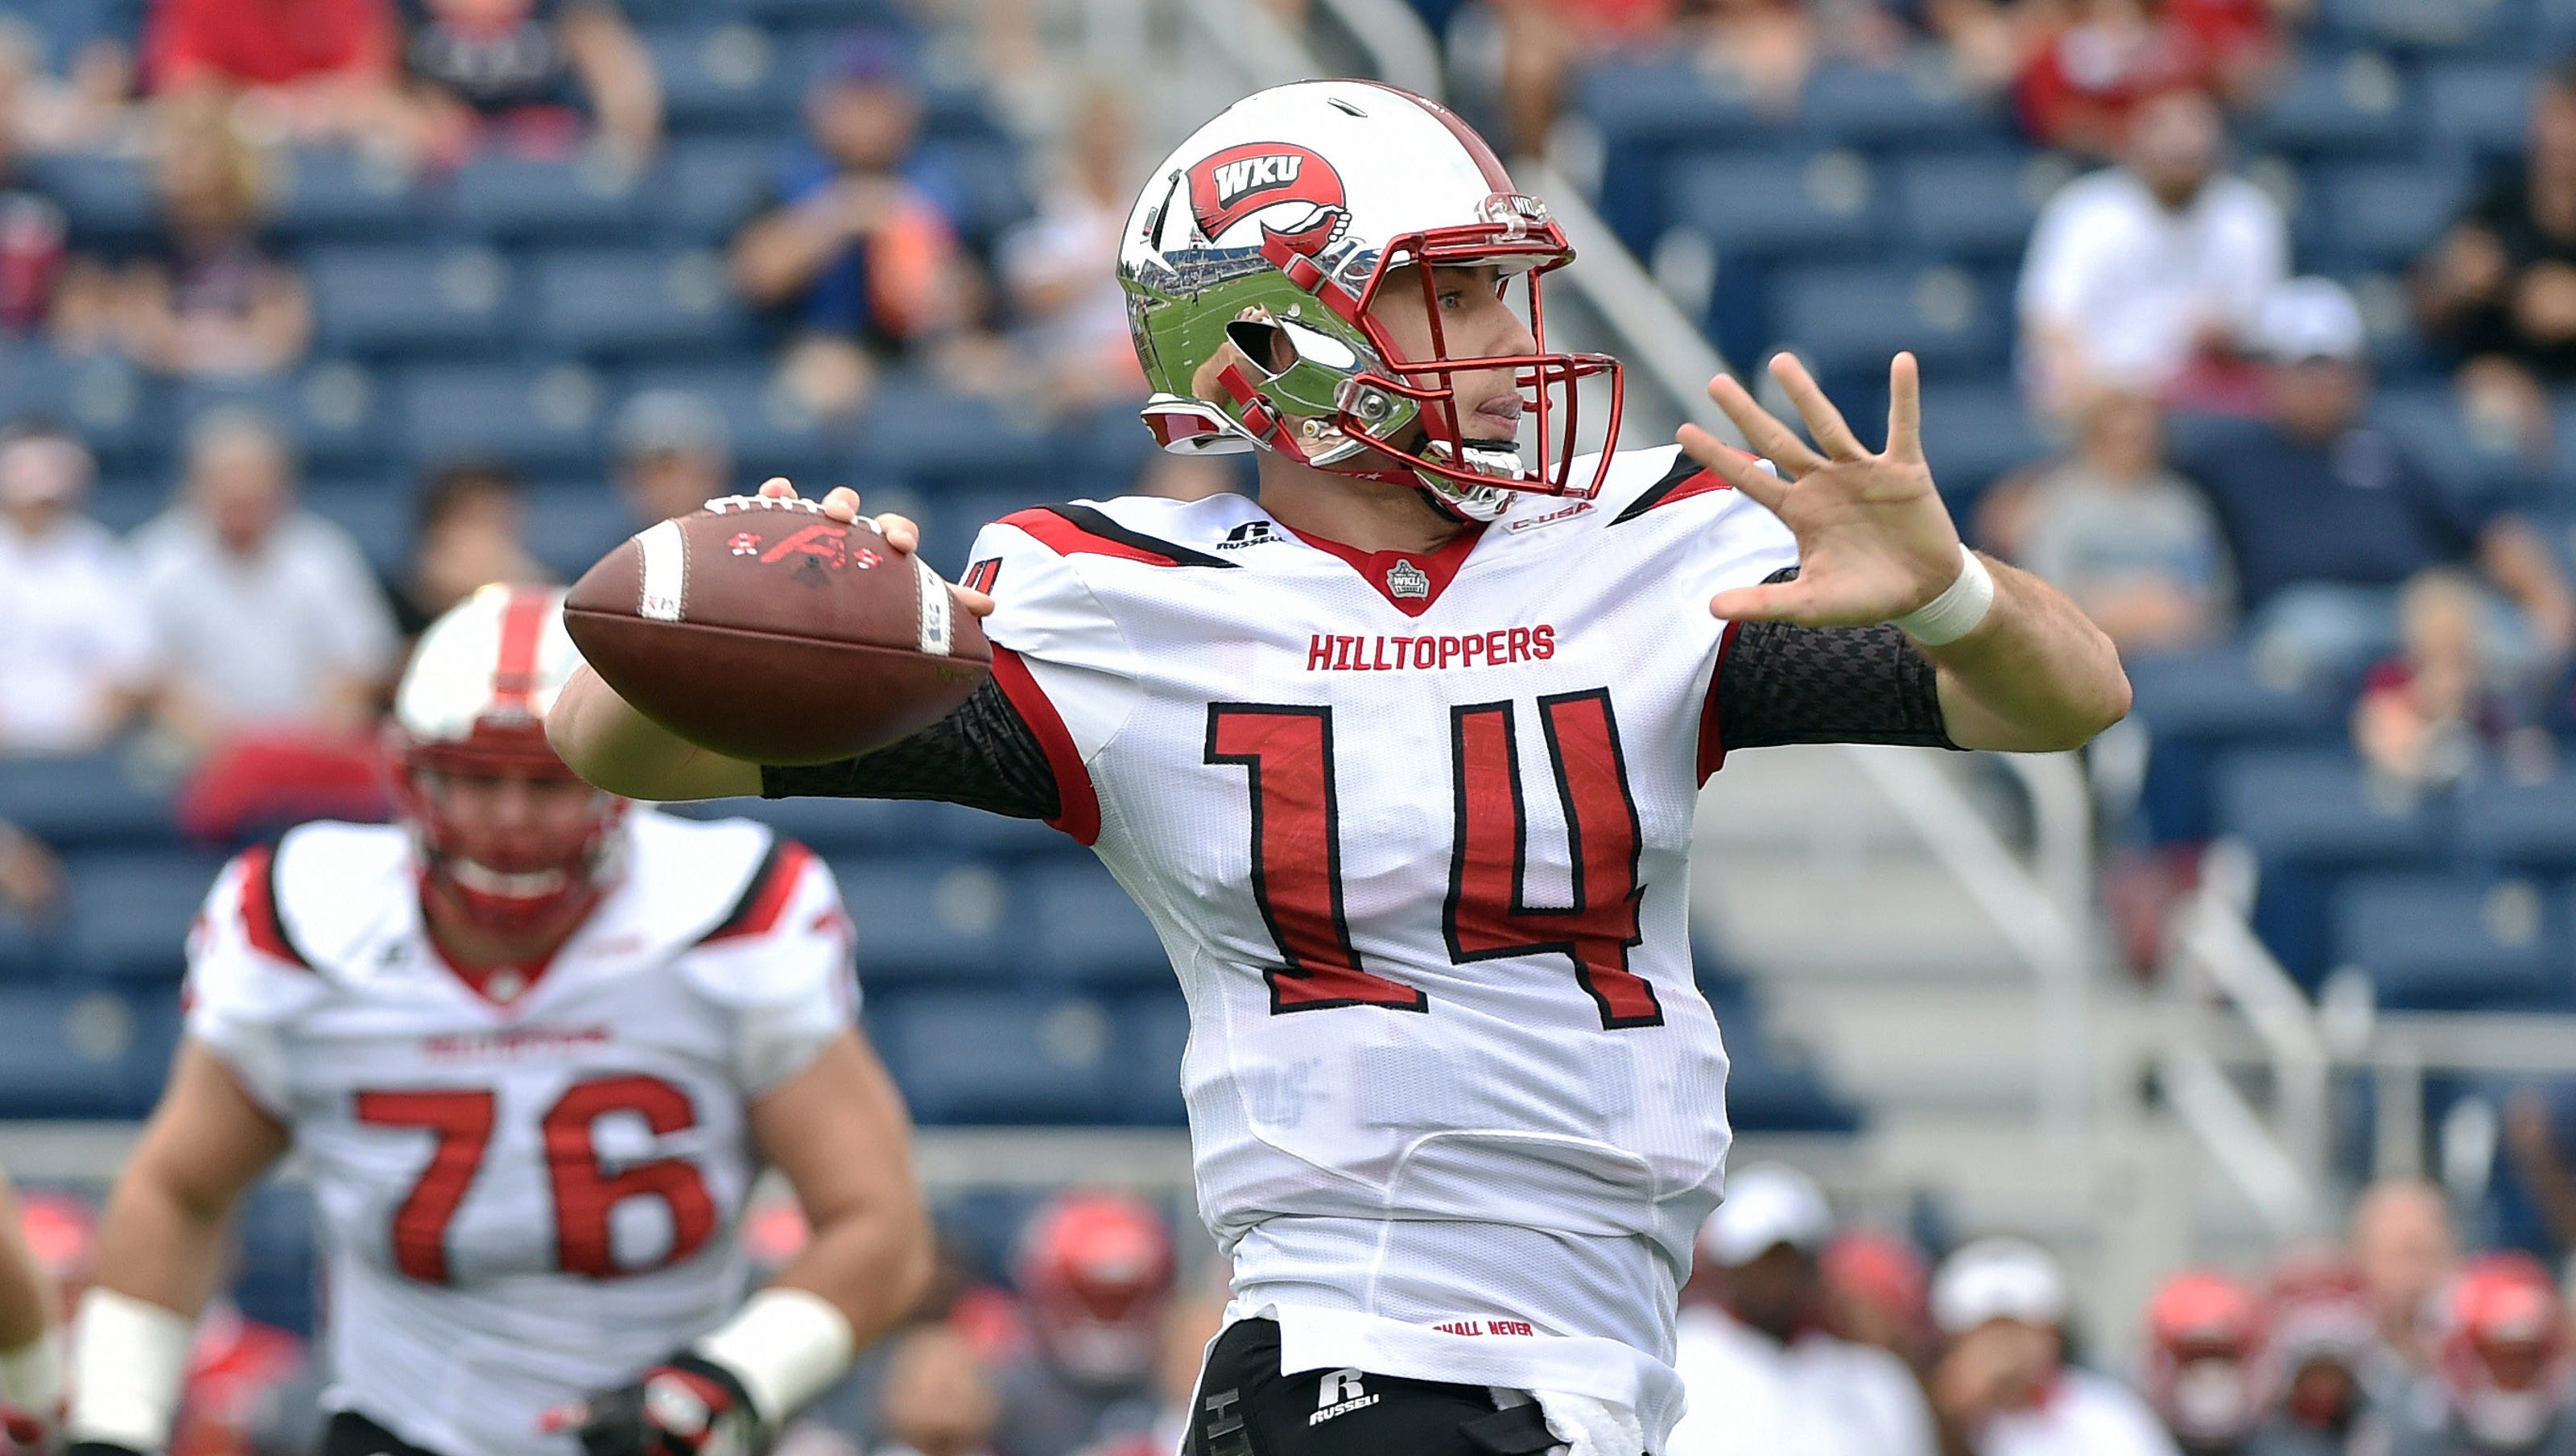 Western Kentucky Has Prime Time Opportunity Against Young Illinois